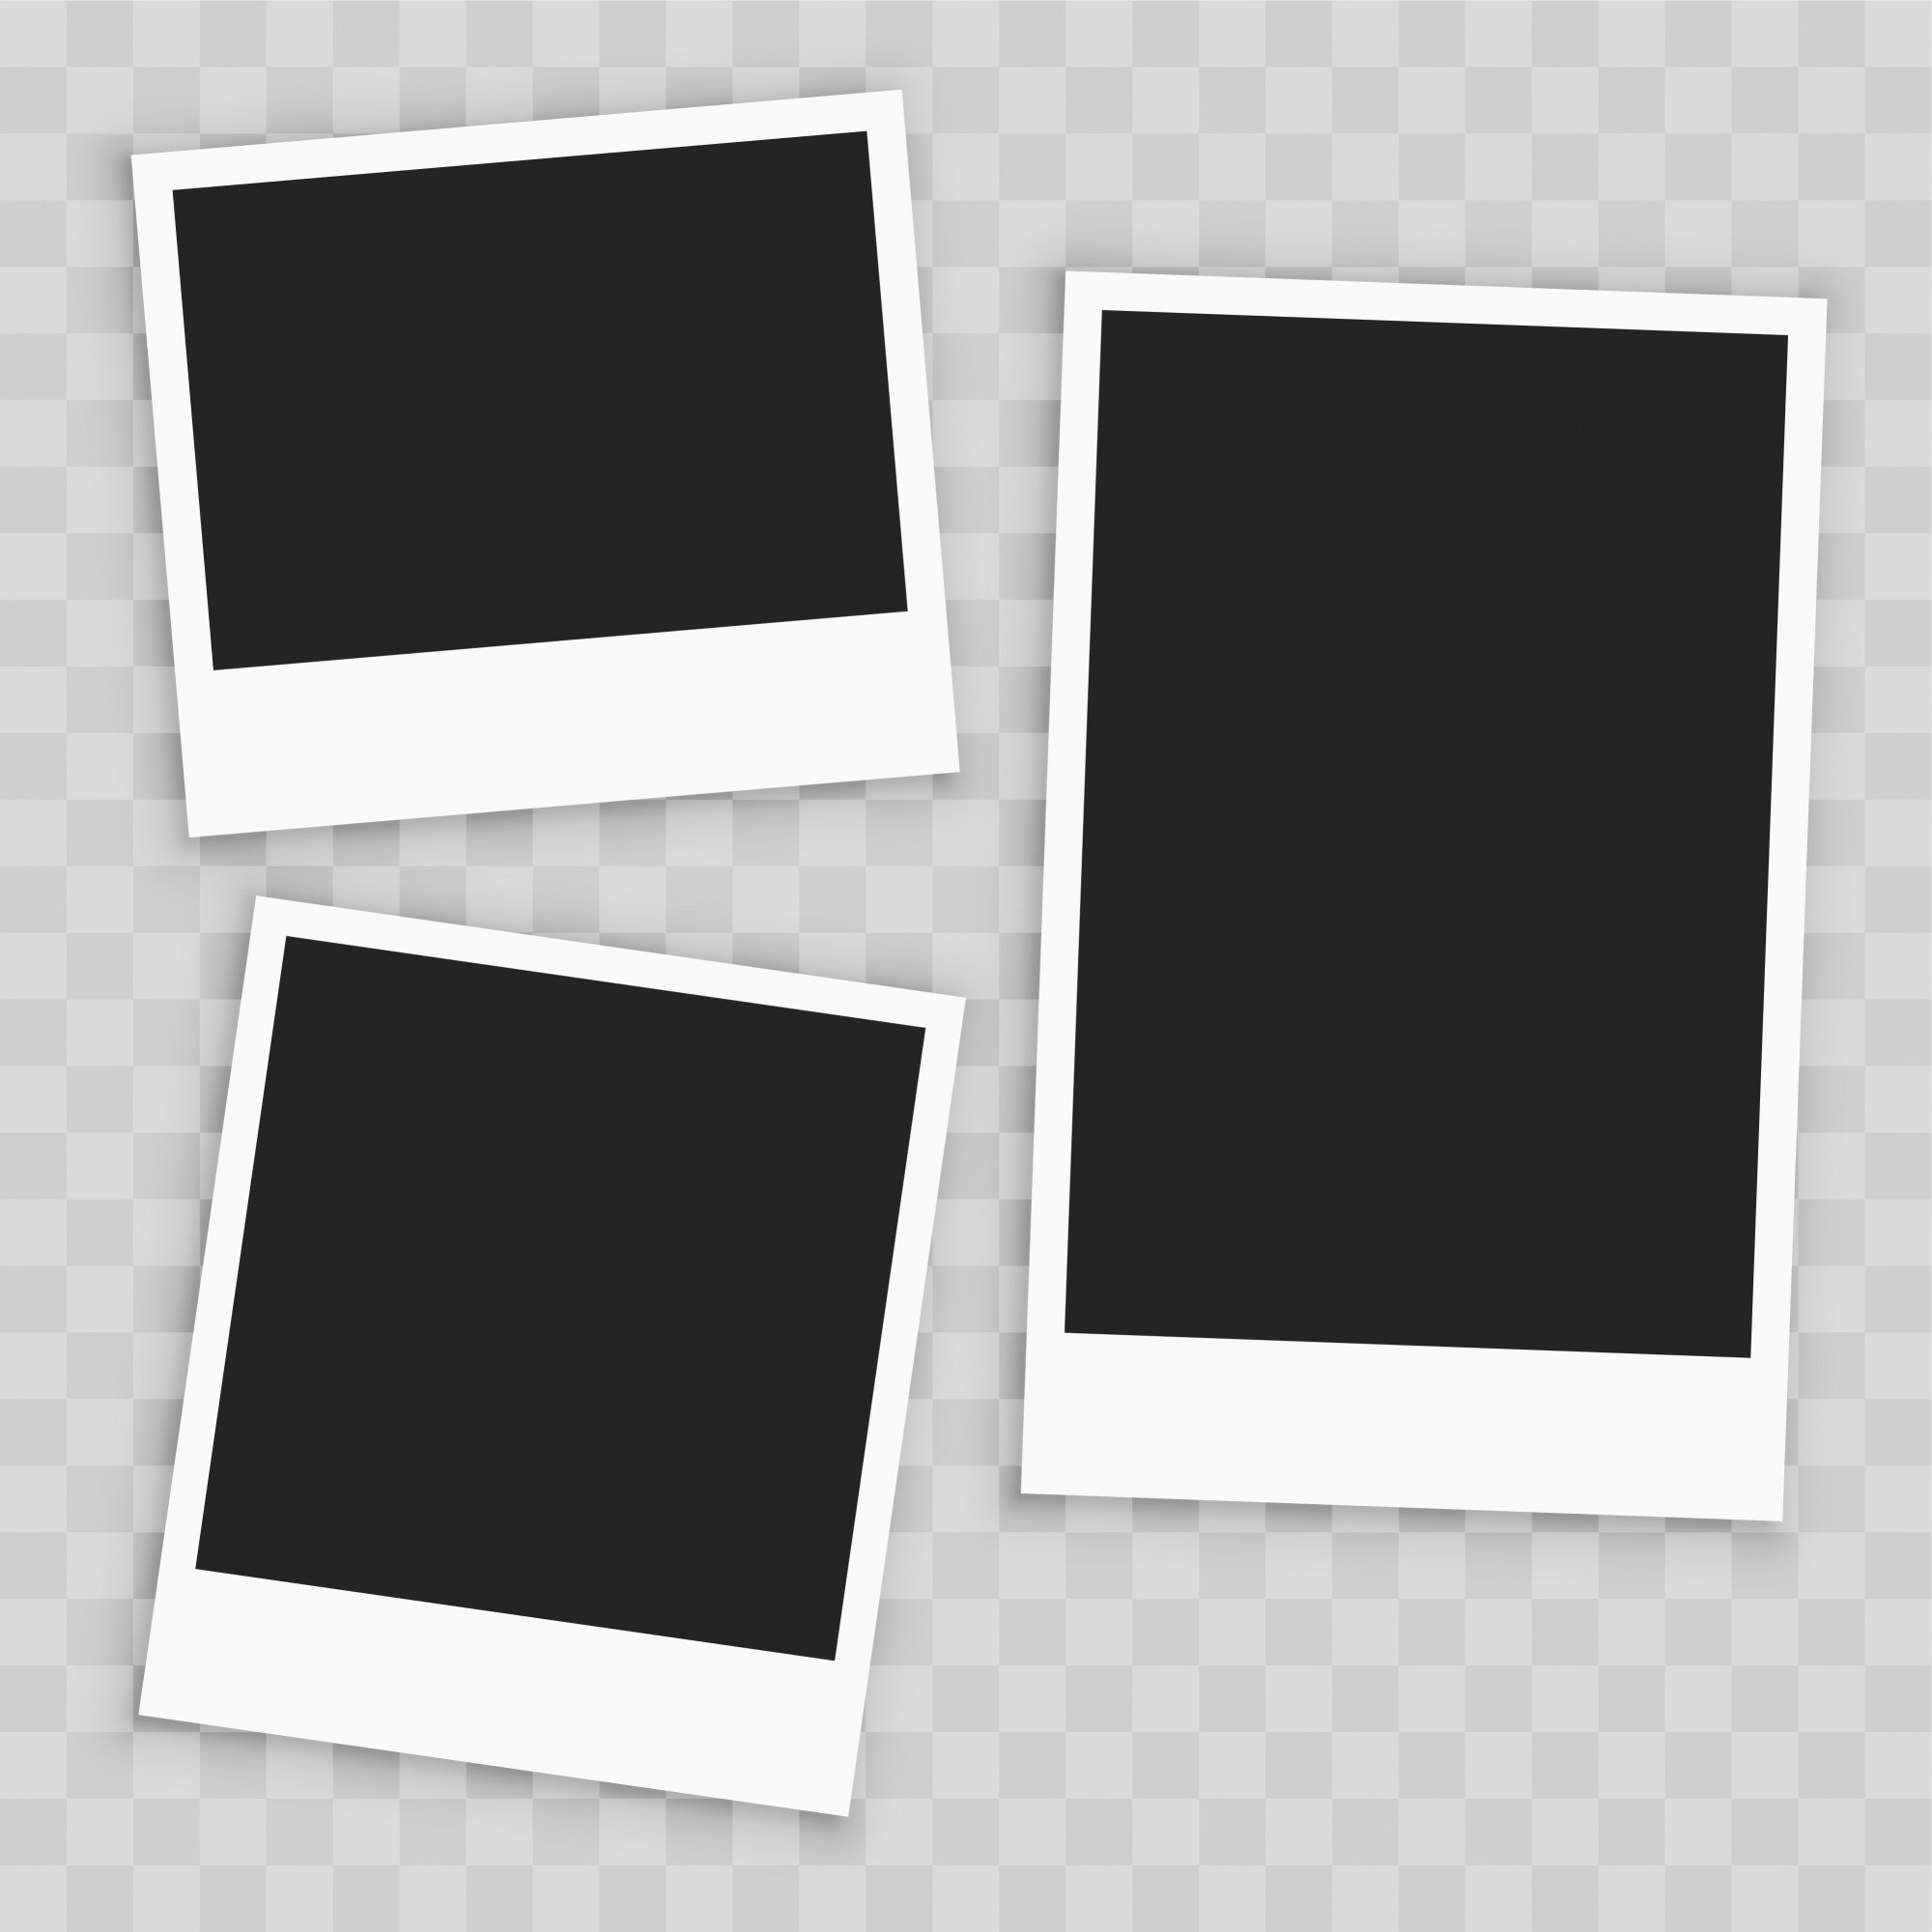 Realistic empty paper photo frame